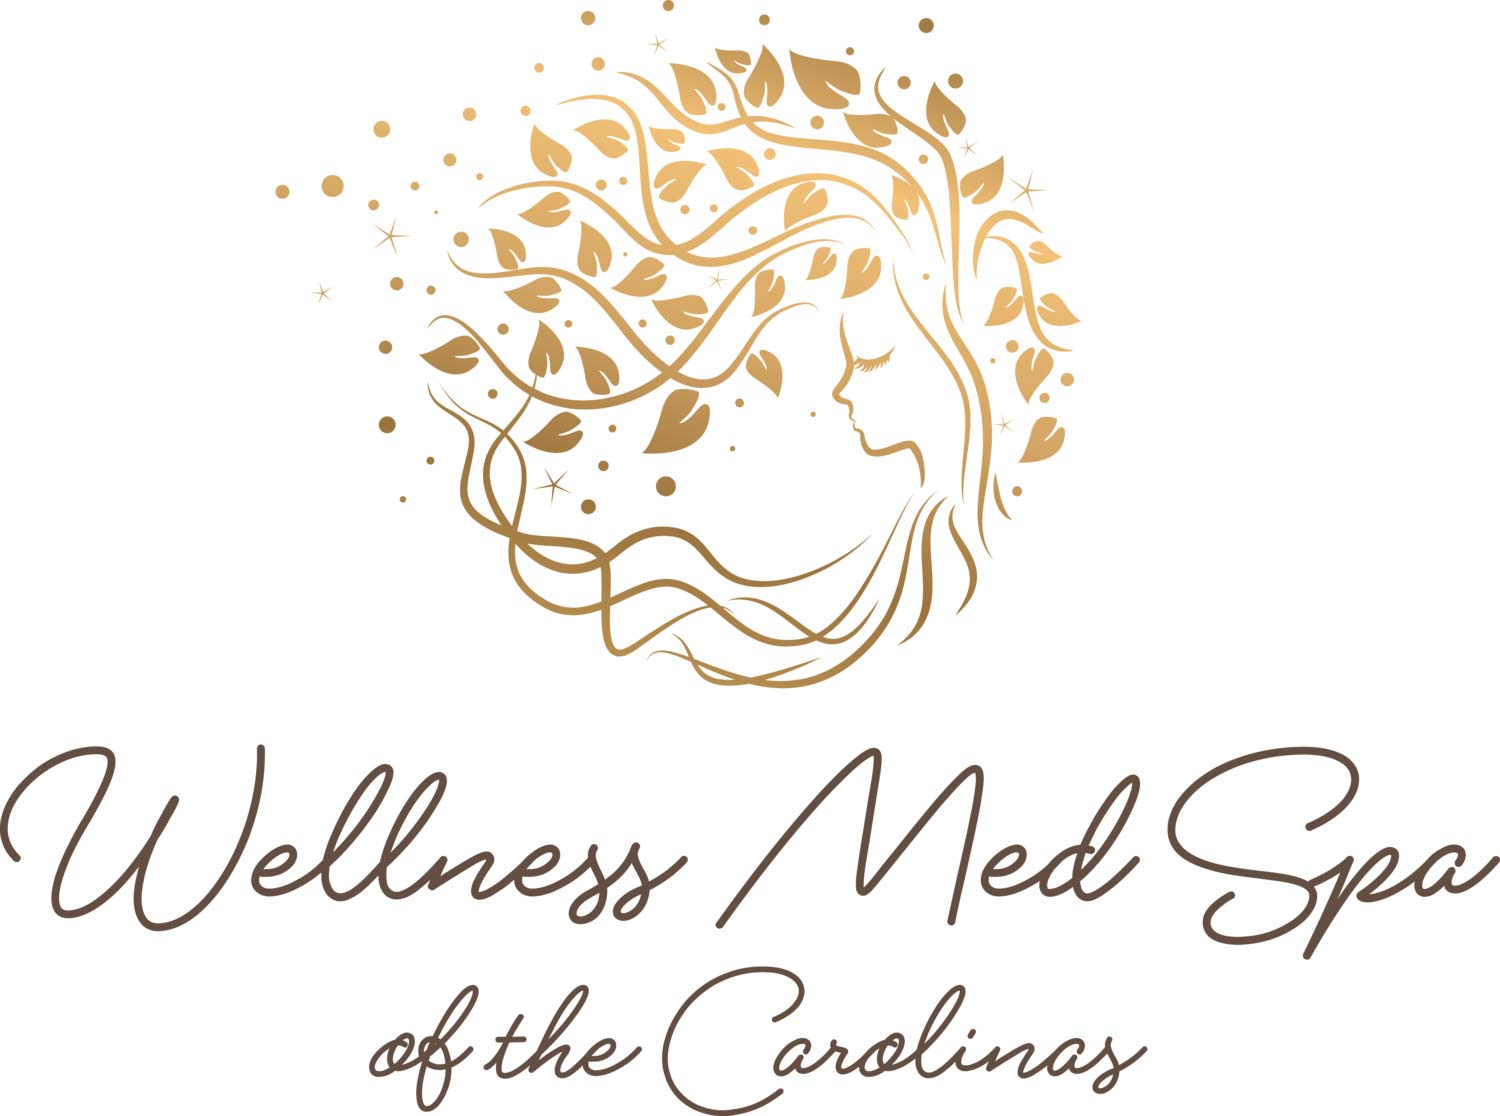 Wellness Med Spa of the Carolinas